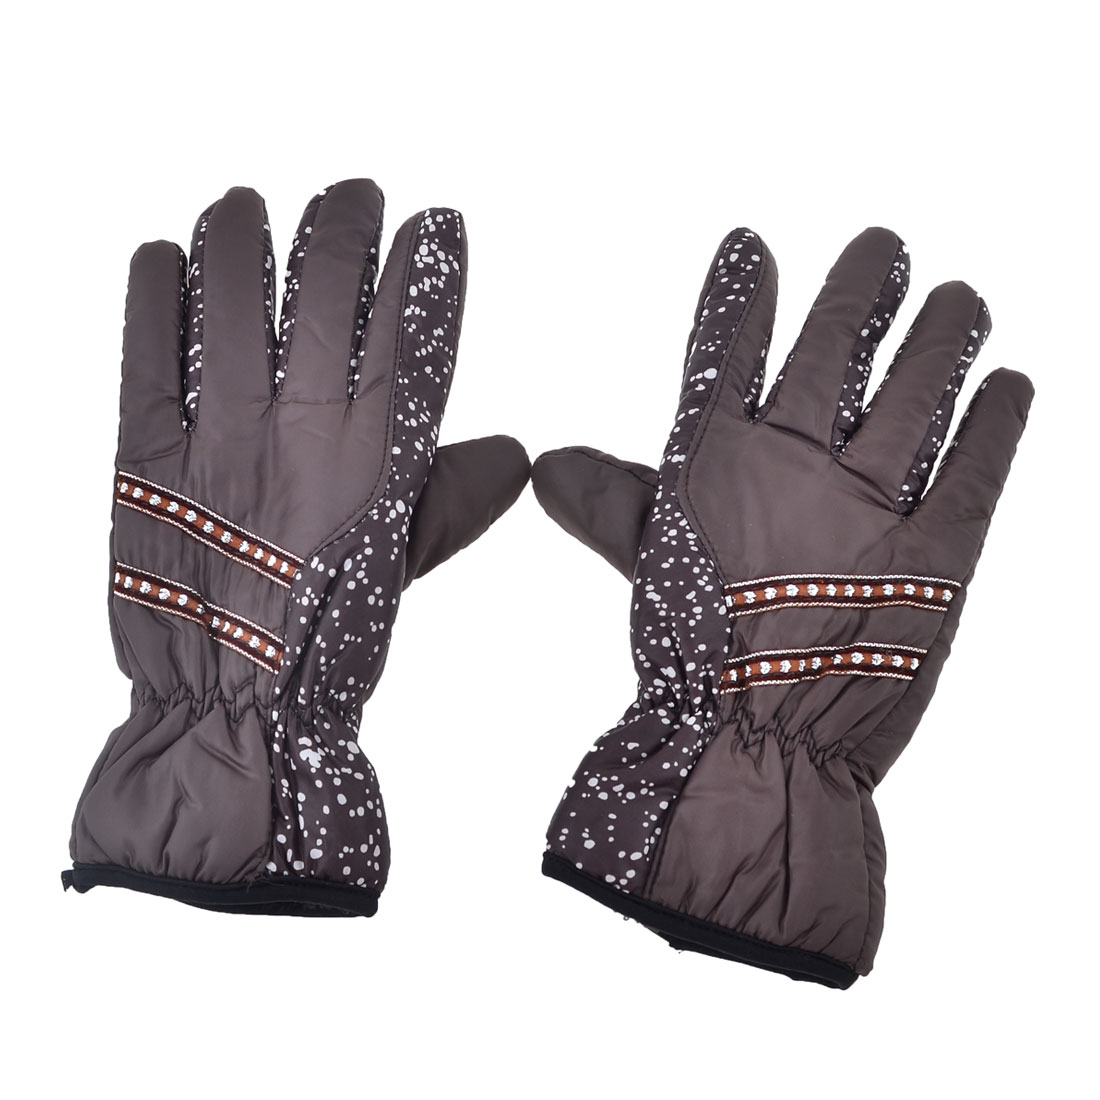 Pair Elastic Cuff Dots Print Full Finger Warm Gloves Coffee Color for Women